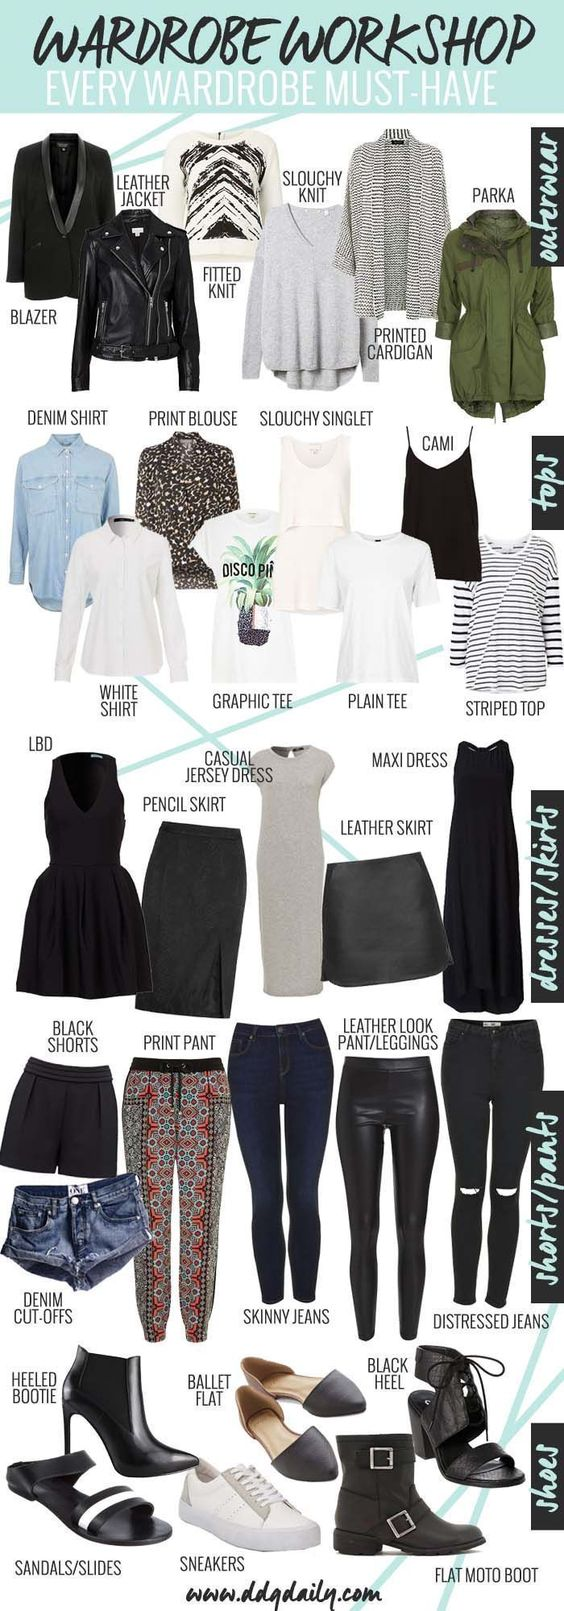 The Street Style Fashion Essentials On Fashion Tips Pinterest Stylists